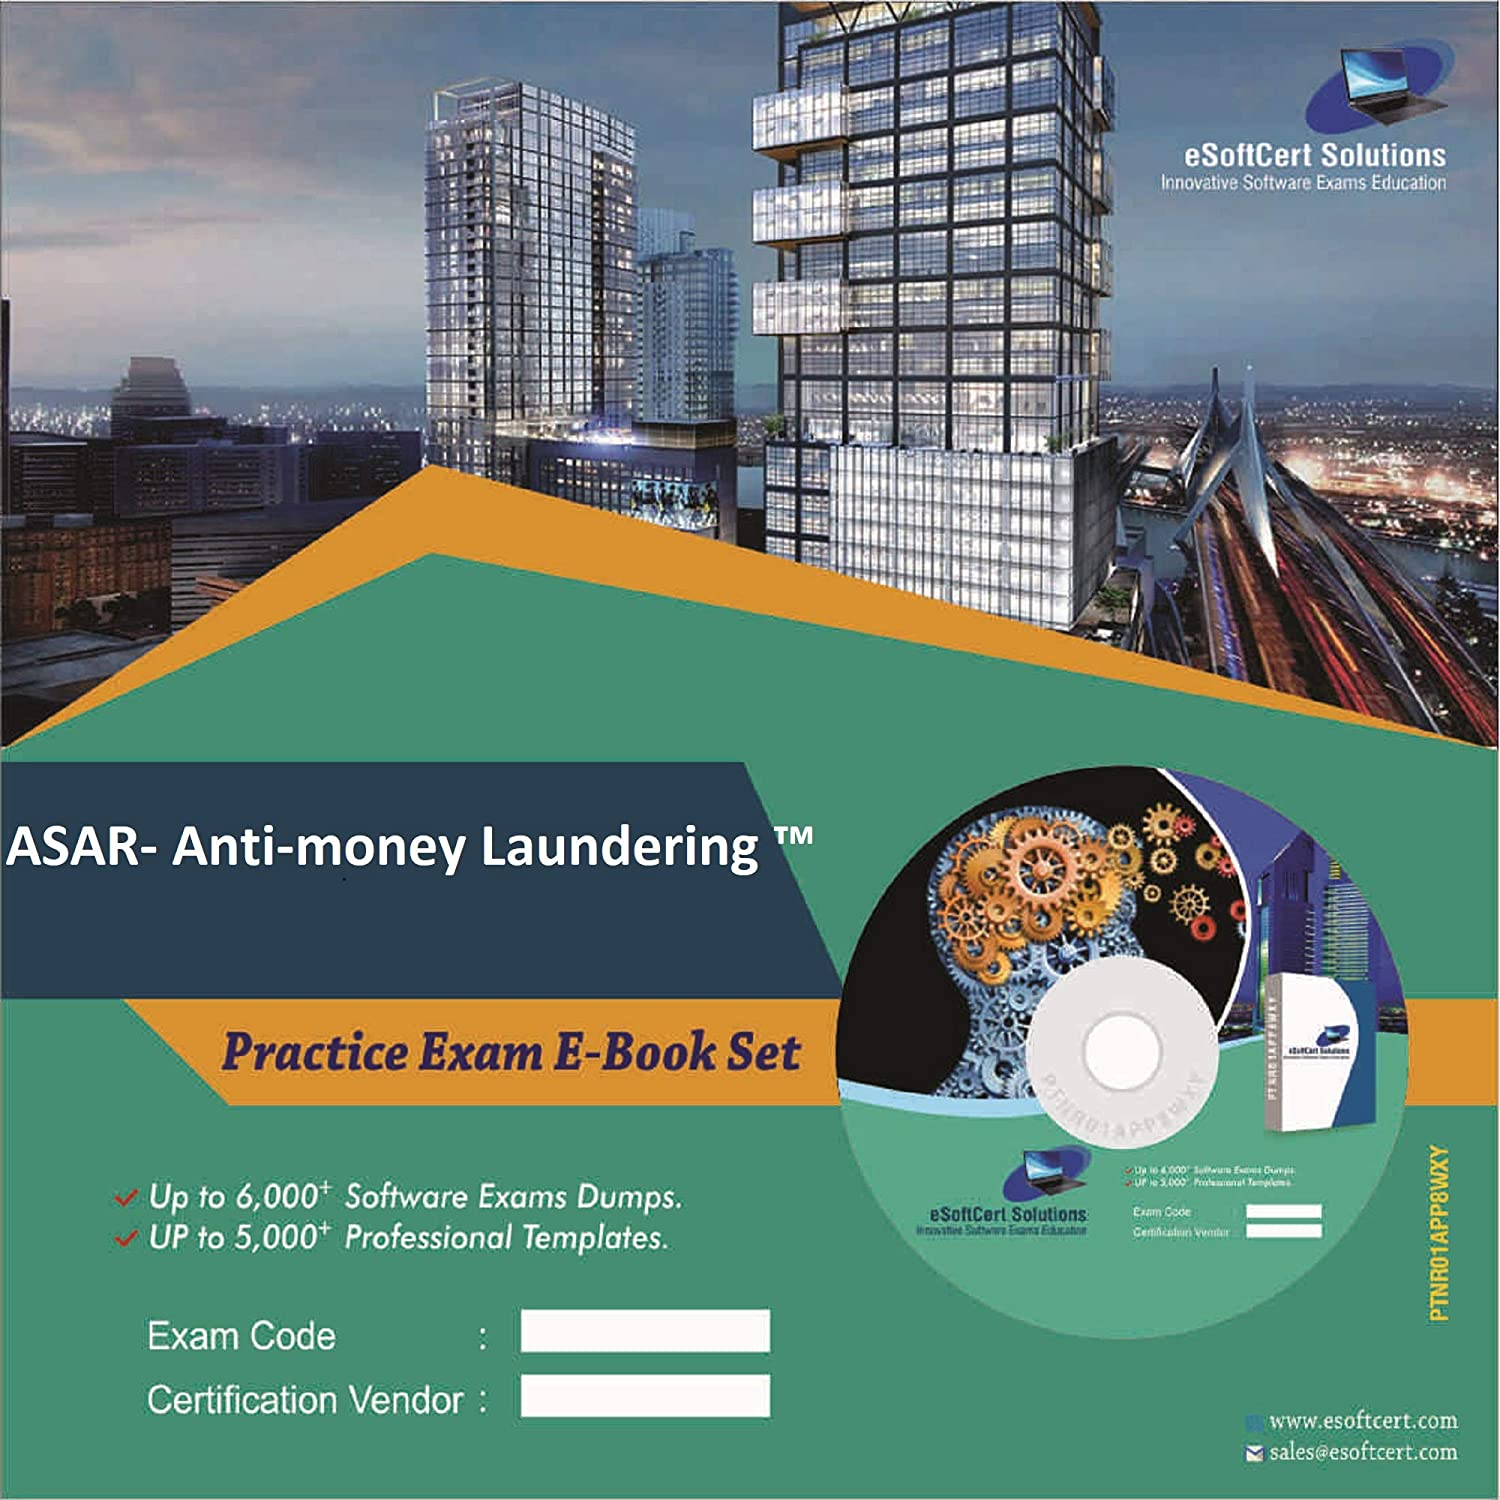 ASAR- Anti-money Laundering ™ Exam Complete Video Learning Solution (DVD)